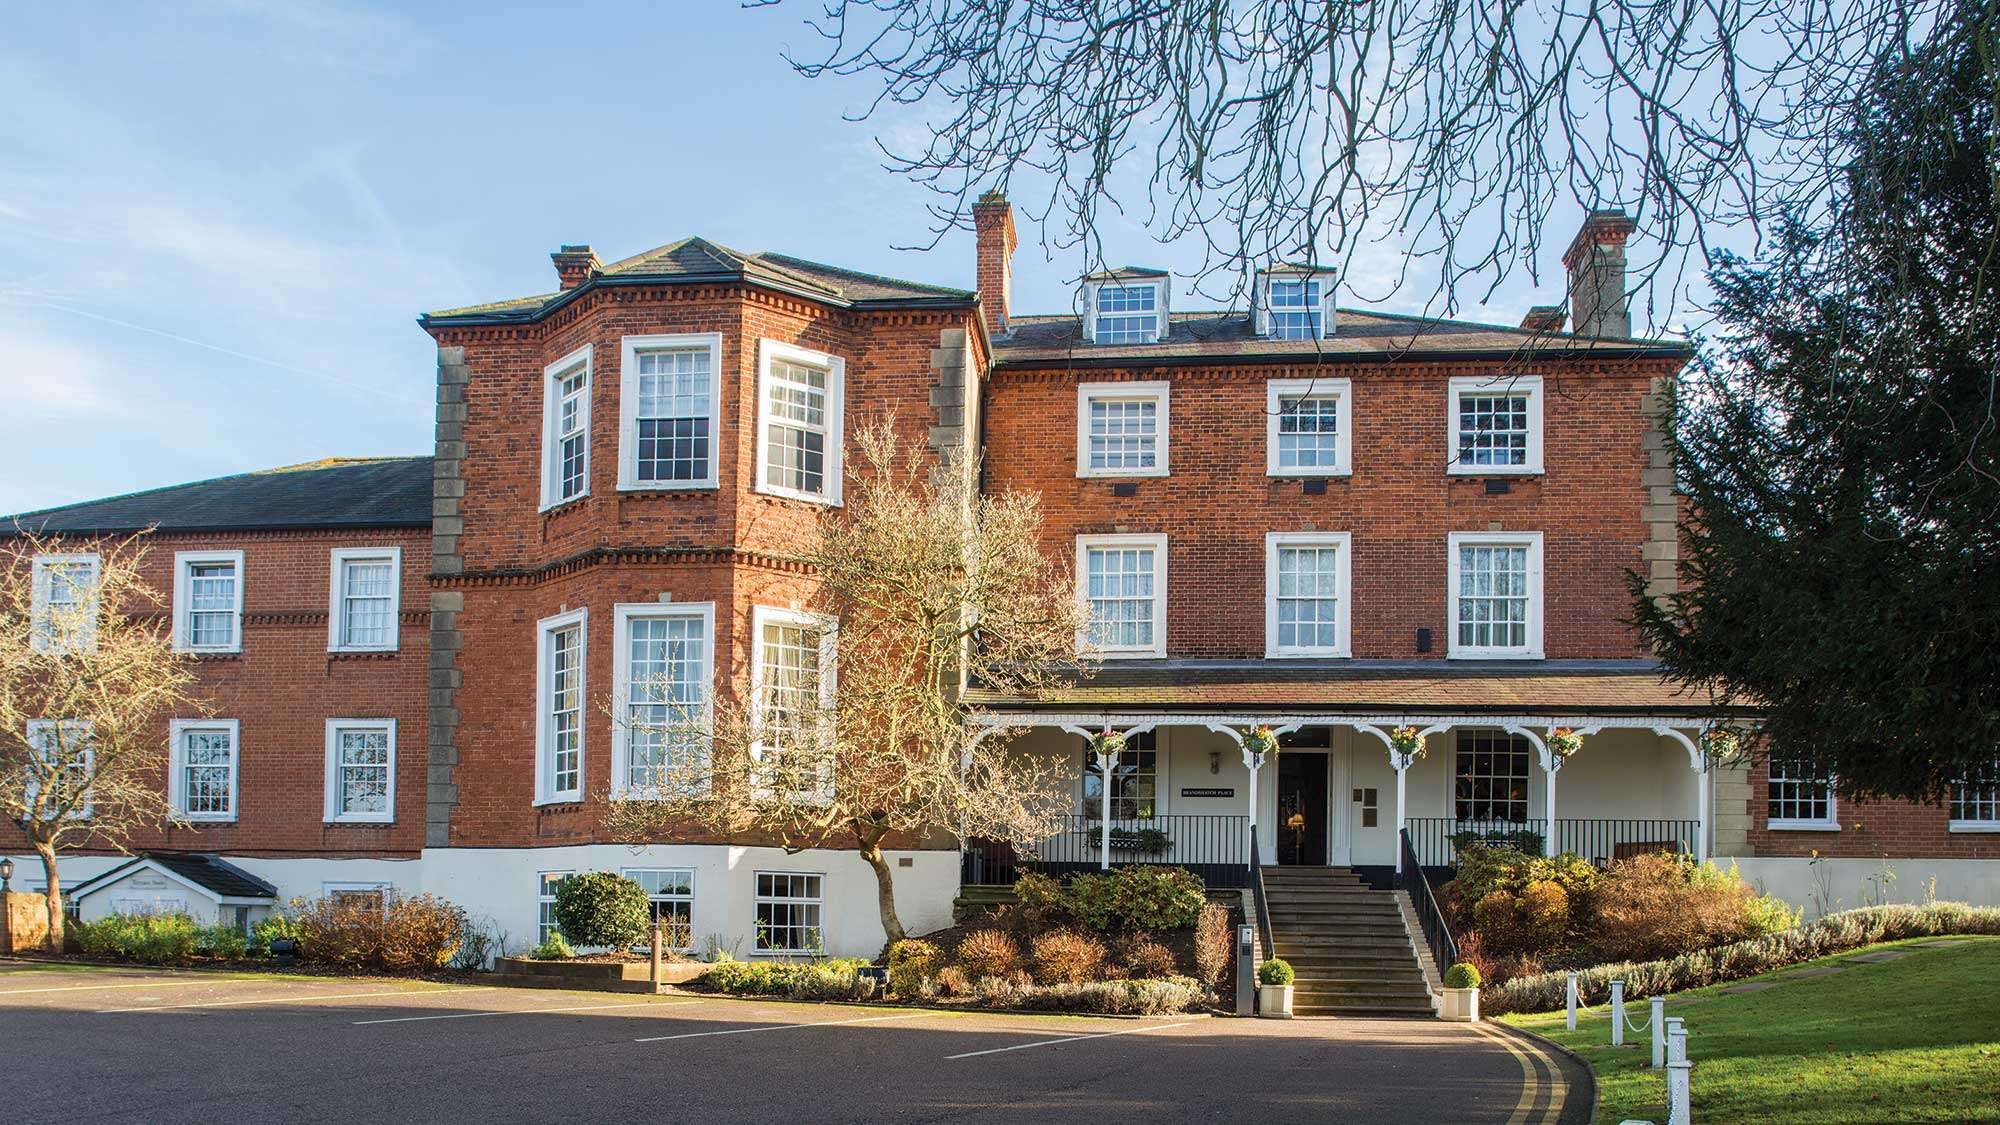 Luxury Hotel Amp Spa In Fawkham Kent Brandshatch Place